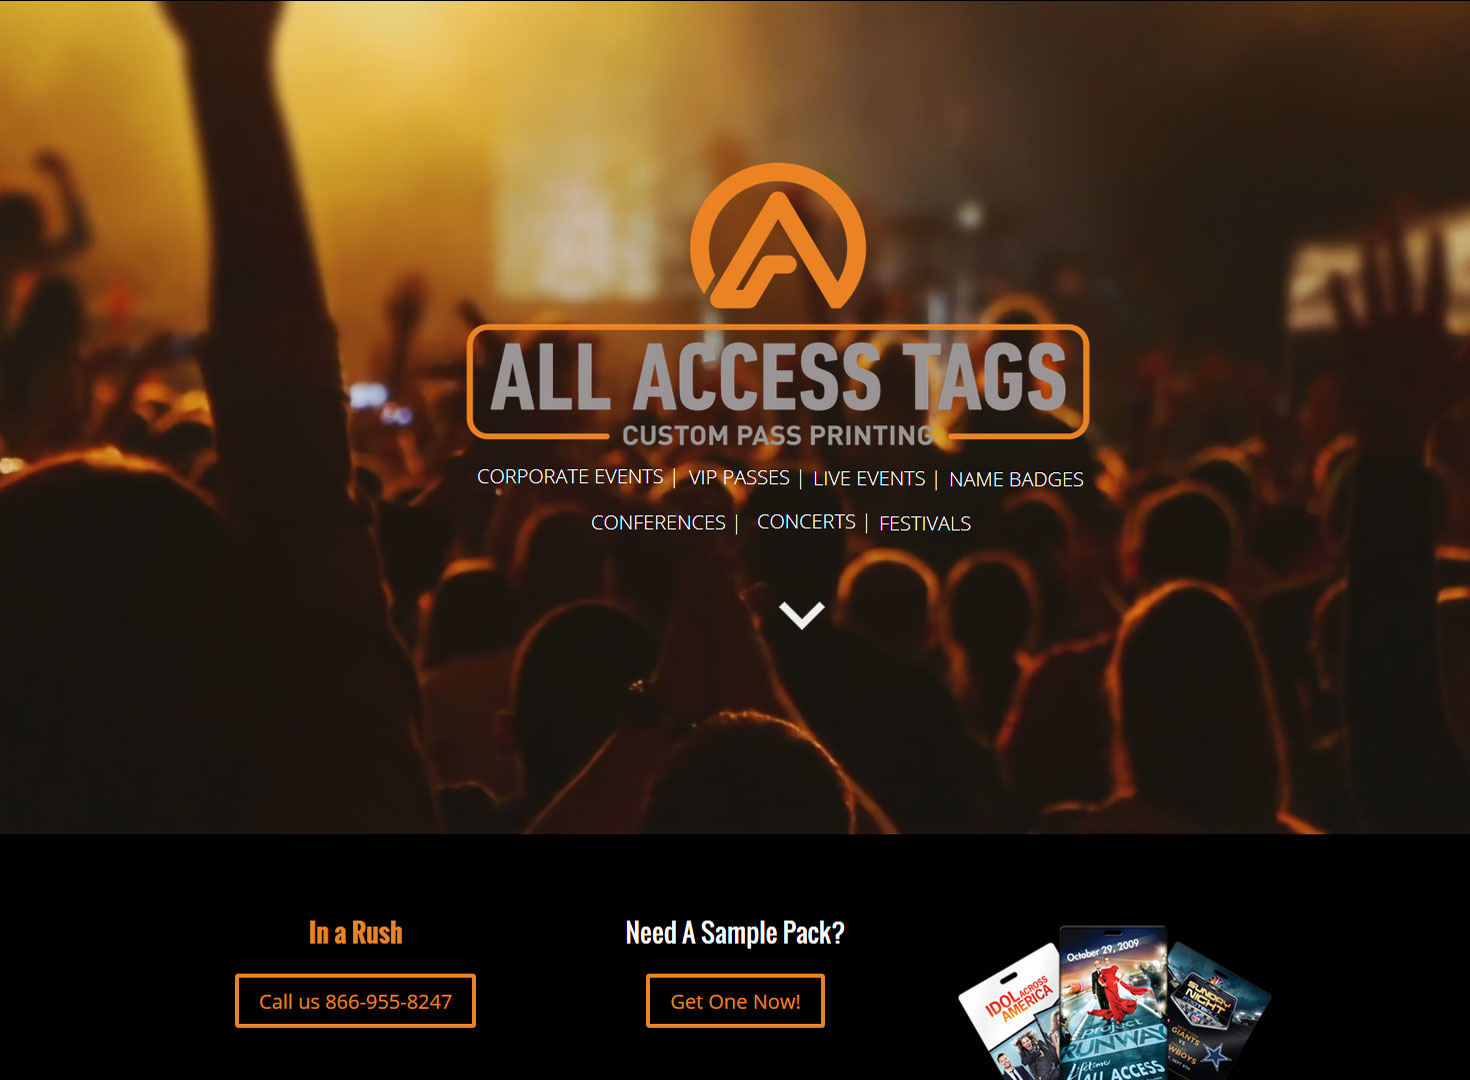 allaccess